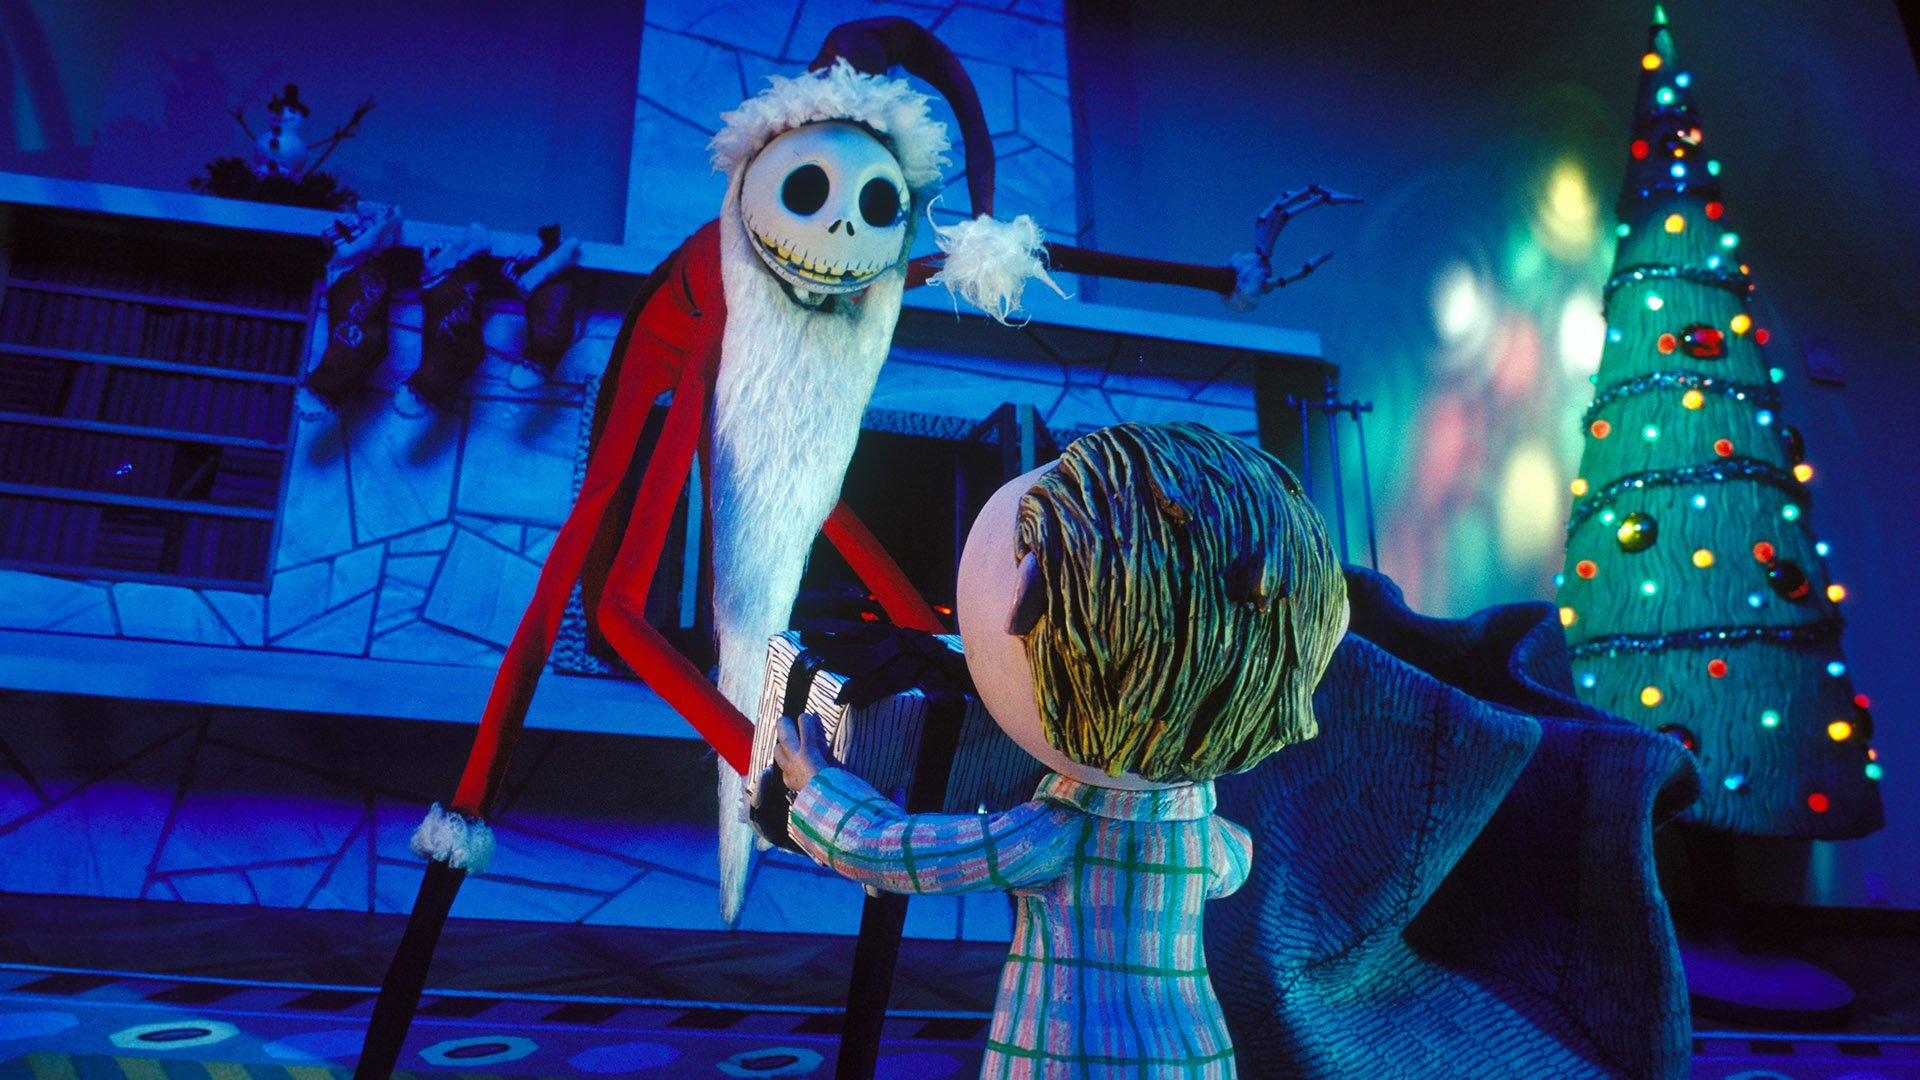 Nightmare Before Christmas Hd Wallpaper.The Nightmare Before Christmas Hd Wallpaper Background